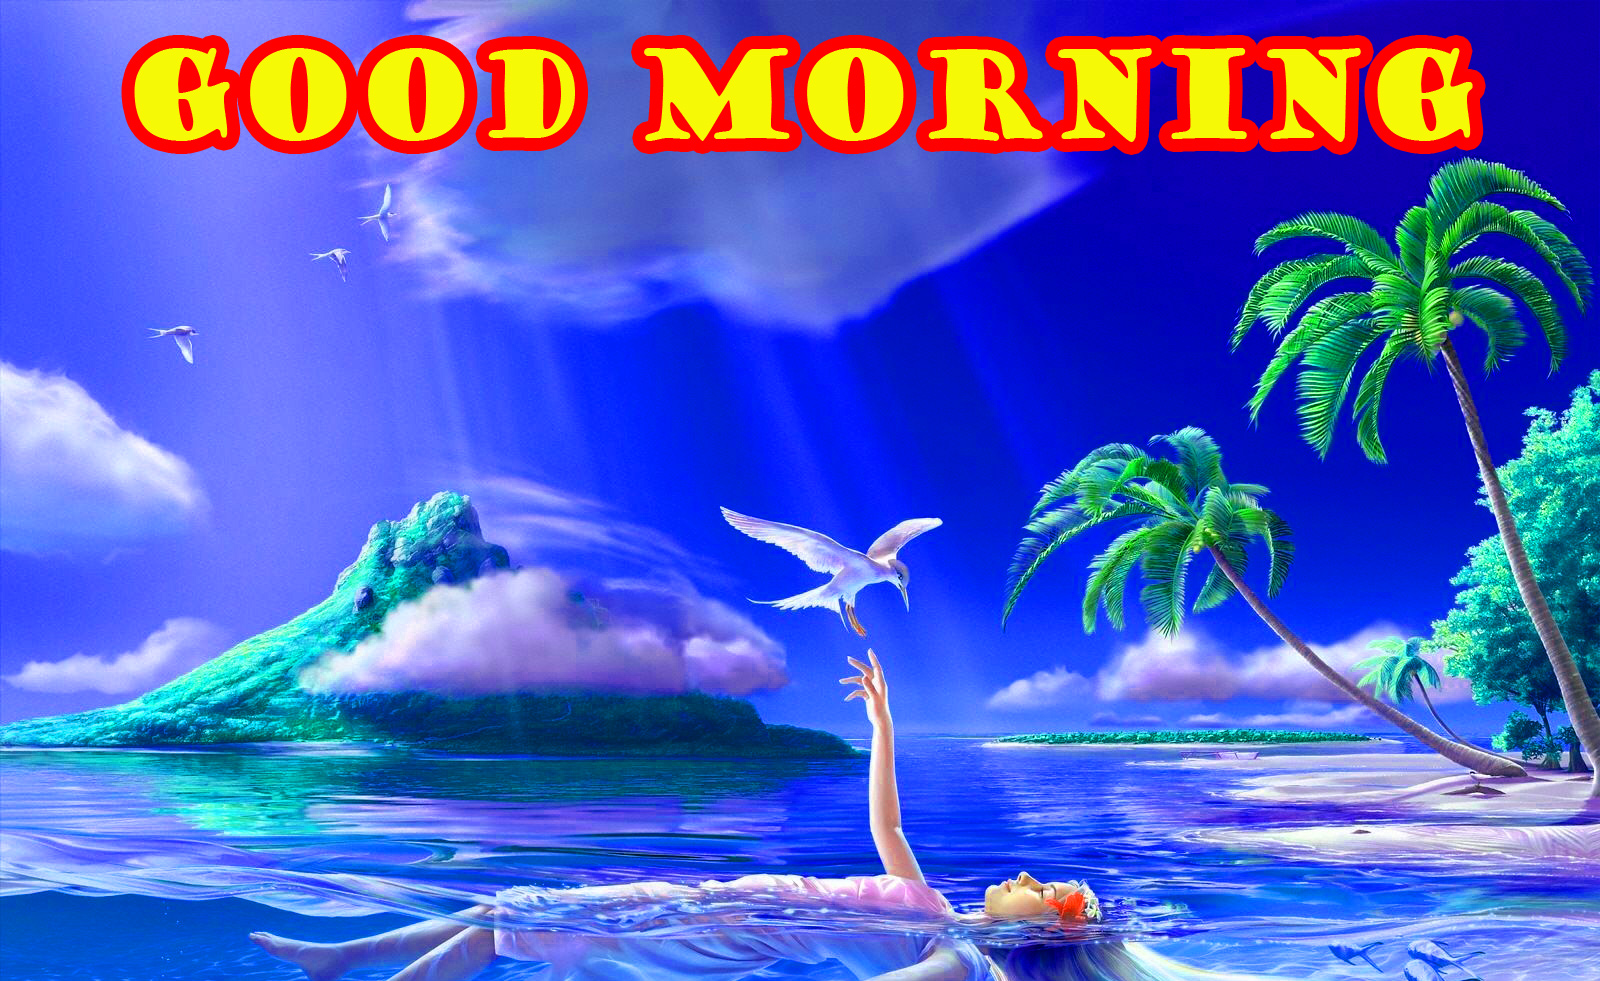 Special Wonderful Good Morning Photo Images Pictures Free HD Download